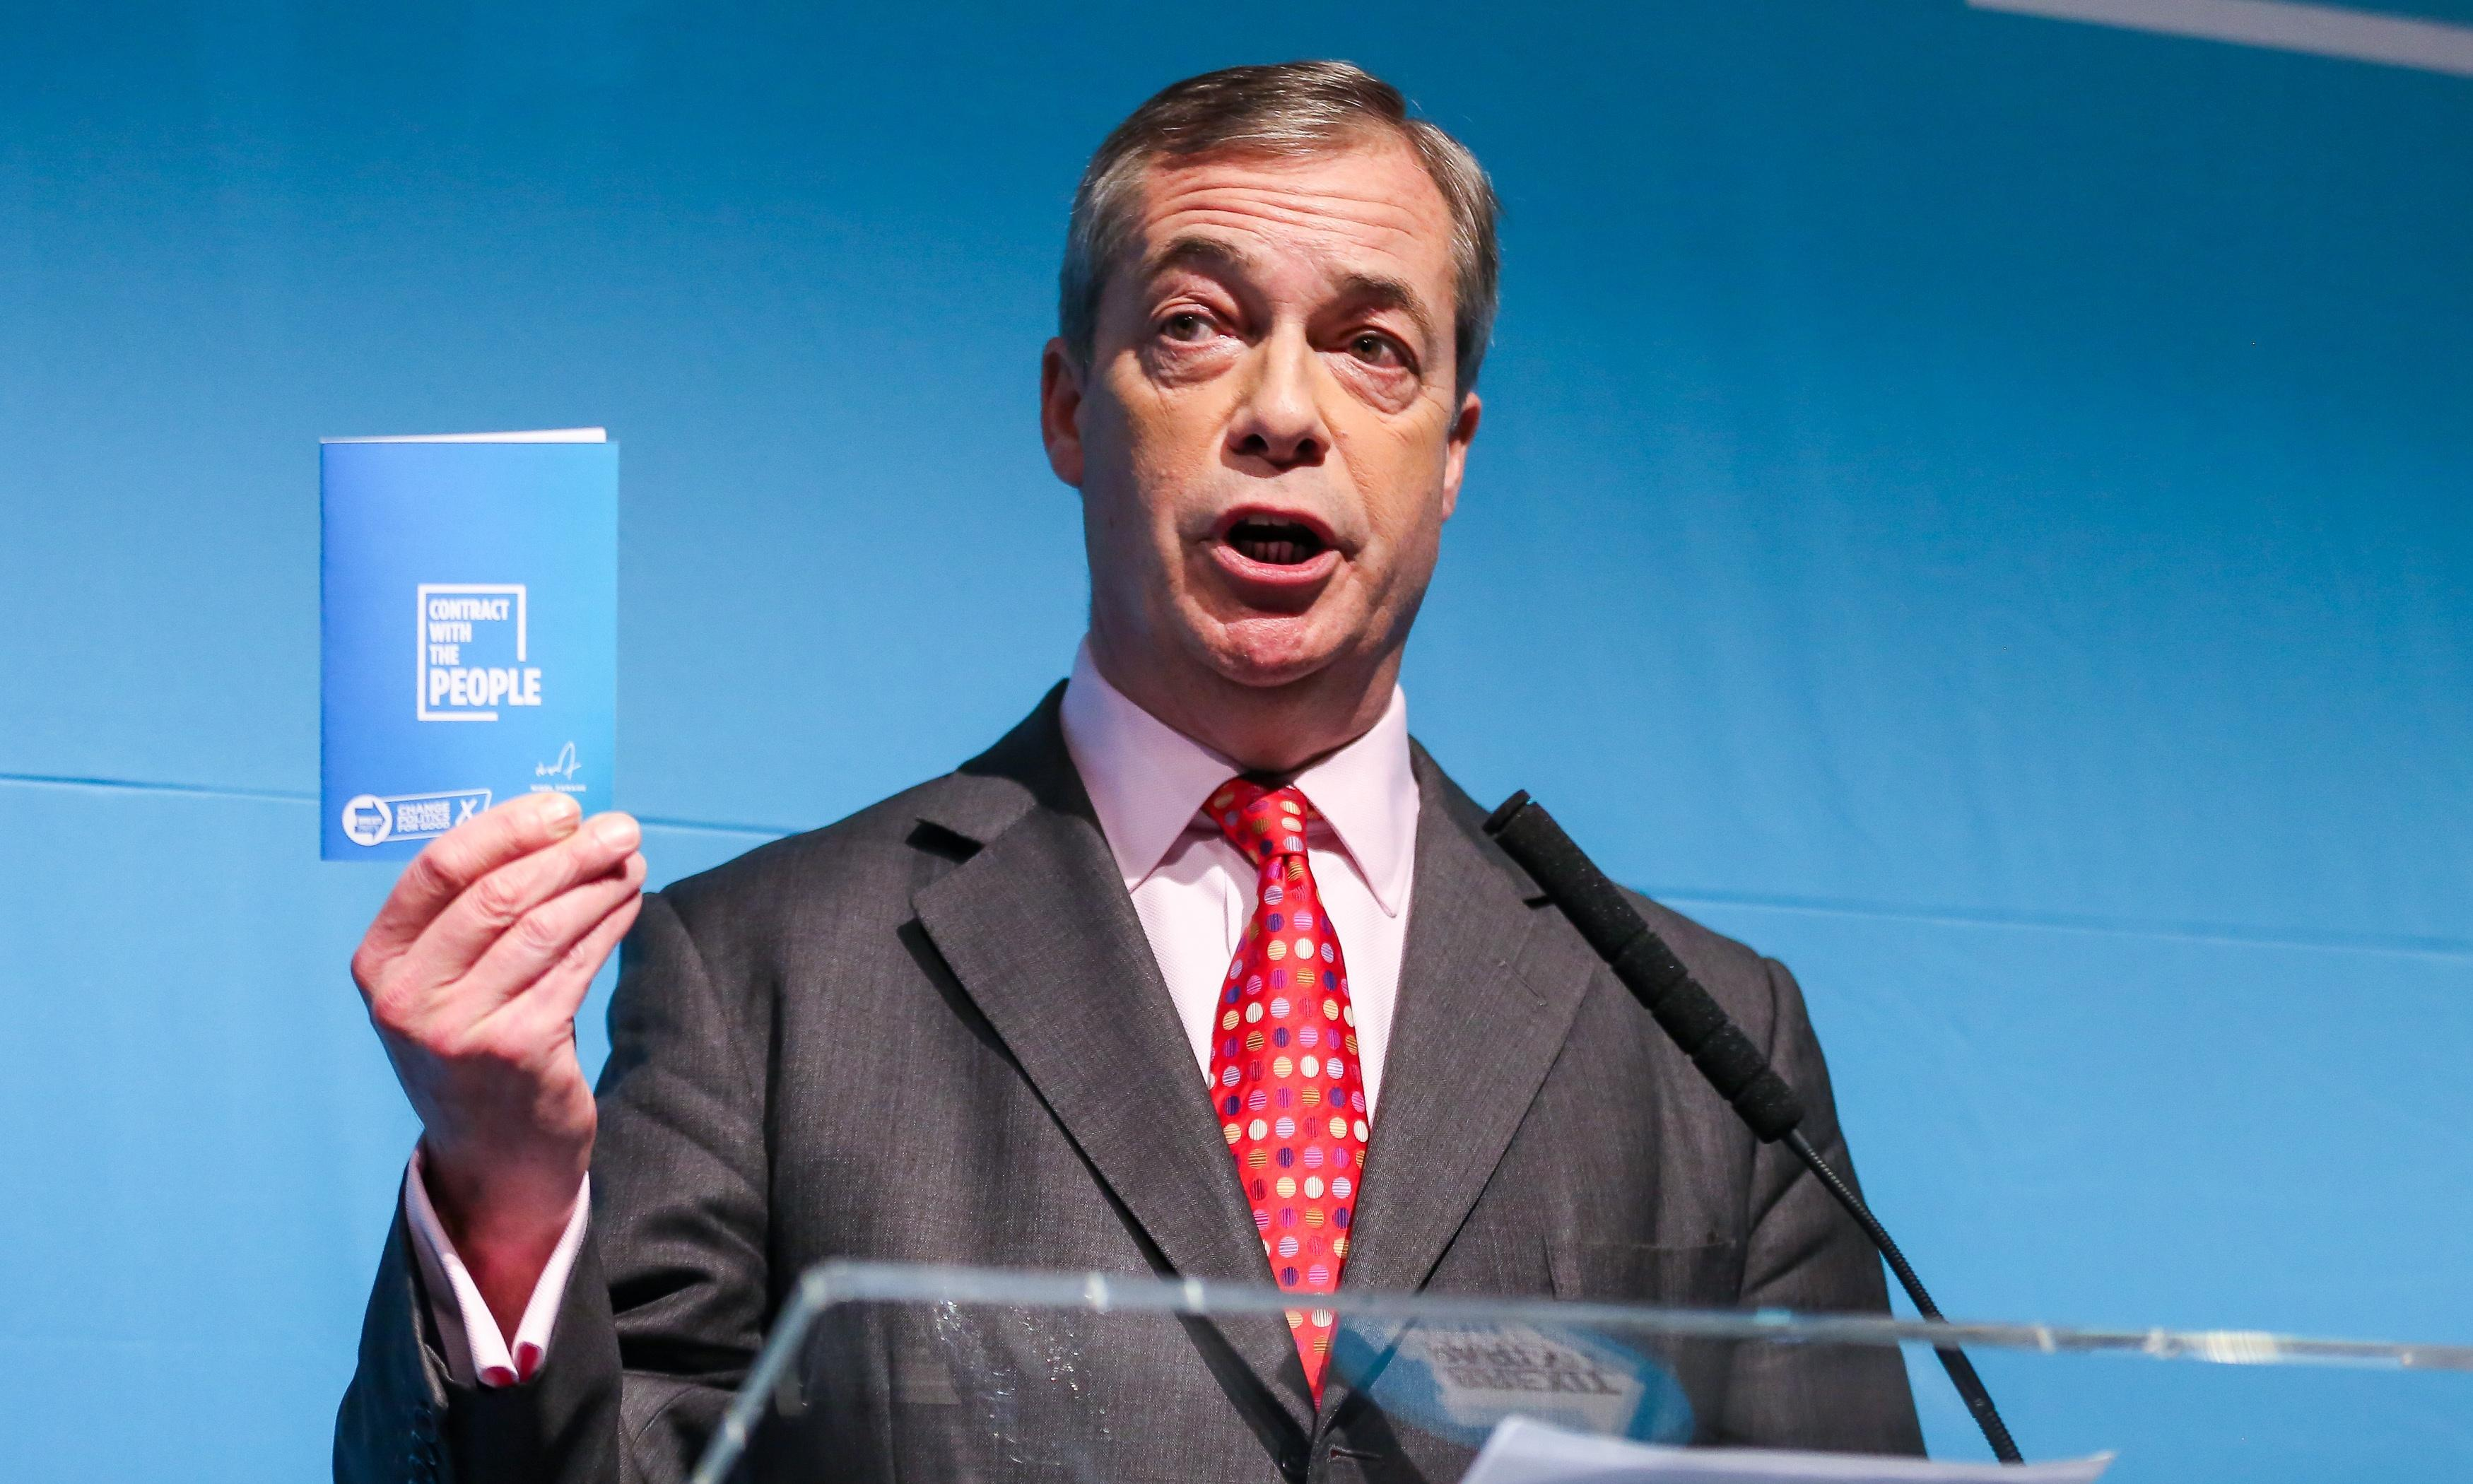 The Brexit party's election pledges: key points